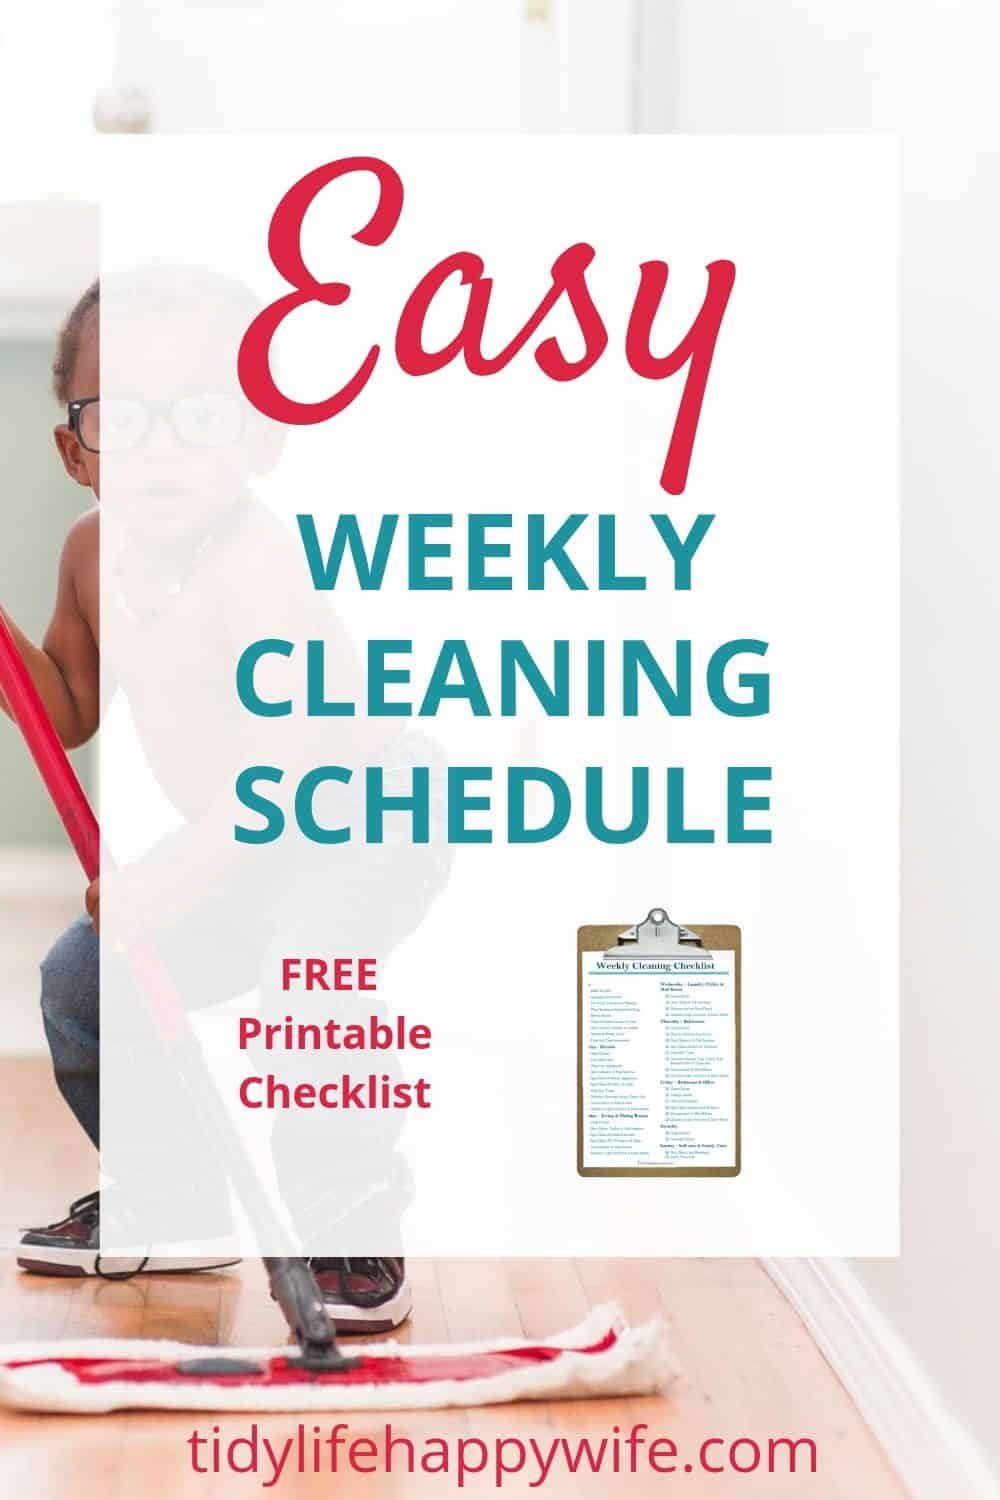 Weekly cleaning schedule to create a routine